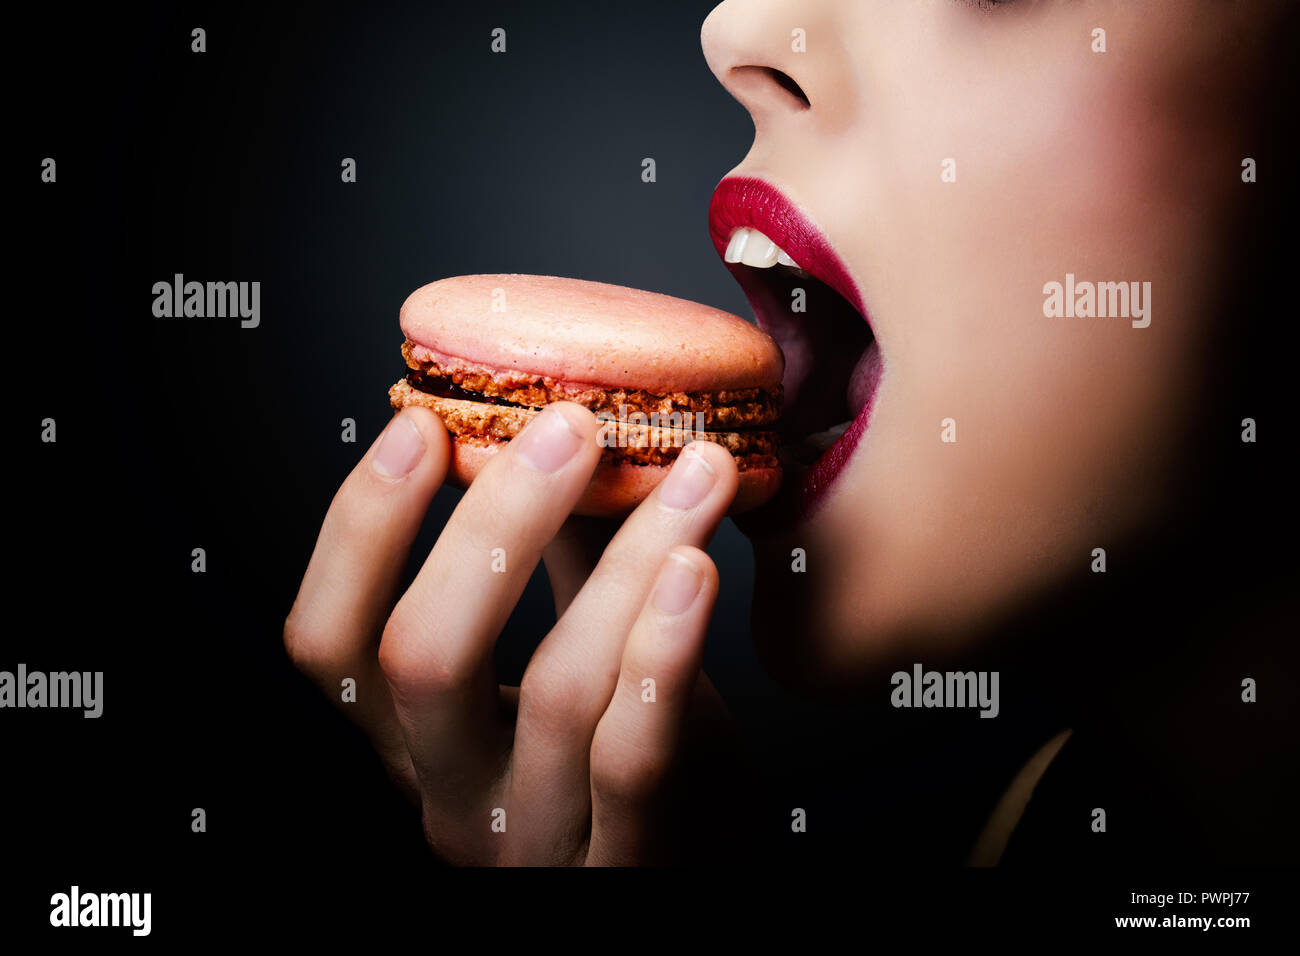 Tight shot of a girl enjoying a macaroon - Stock Image